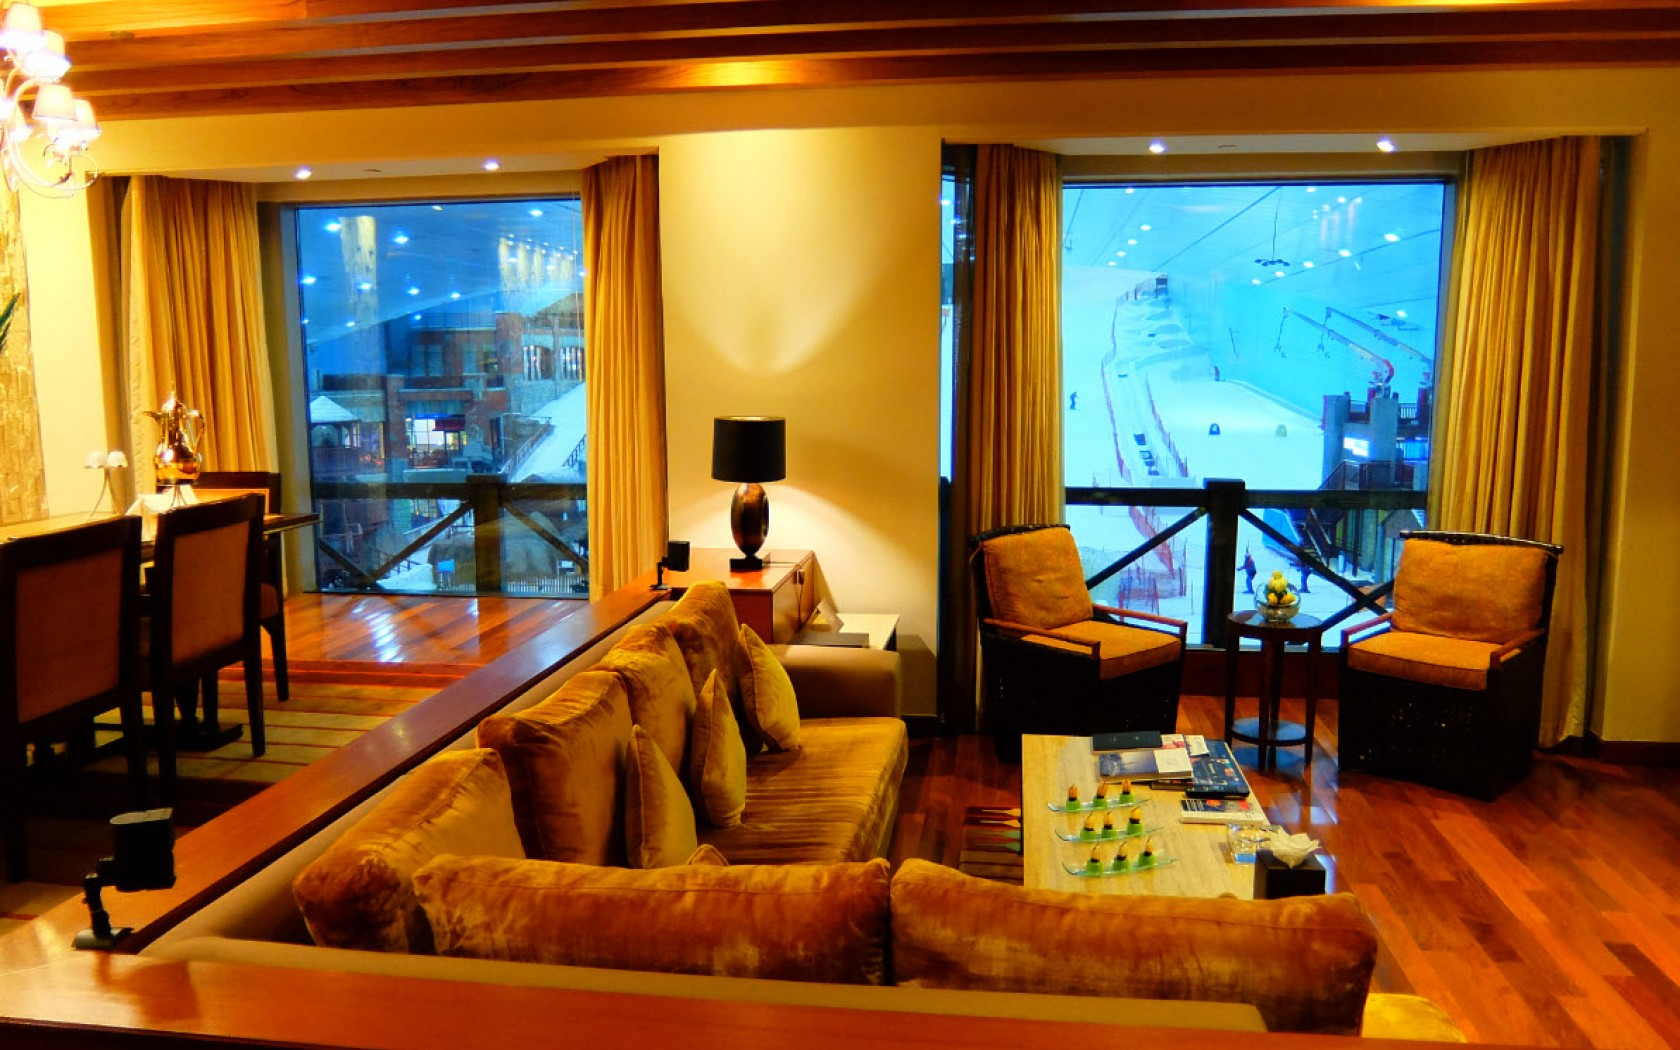 Ski Chalet Kempinski Mall of the Emirates Dubai